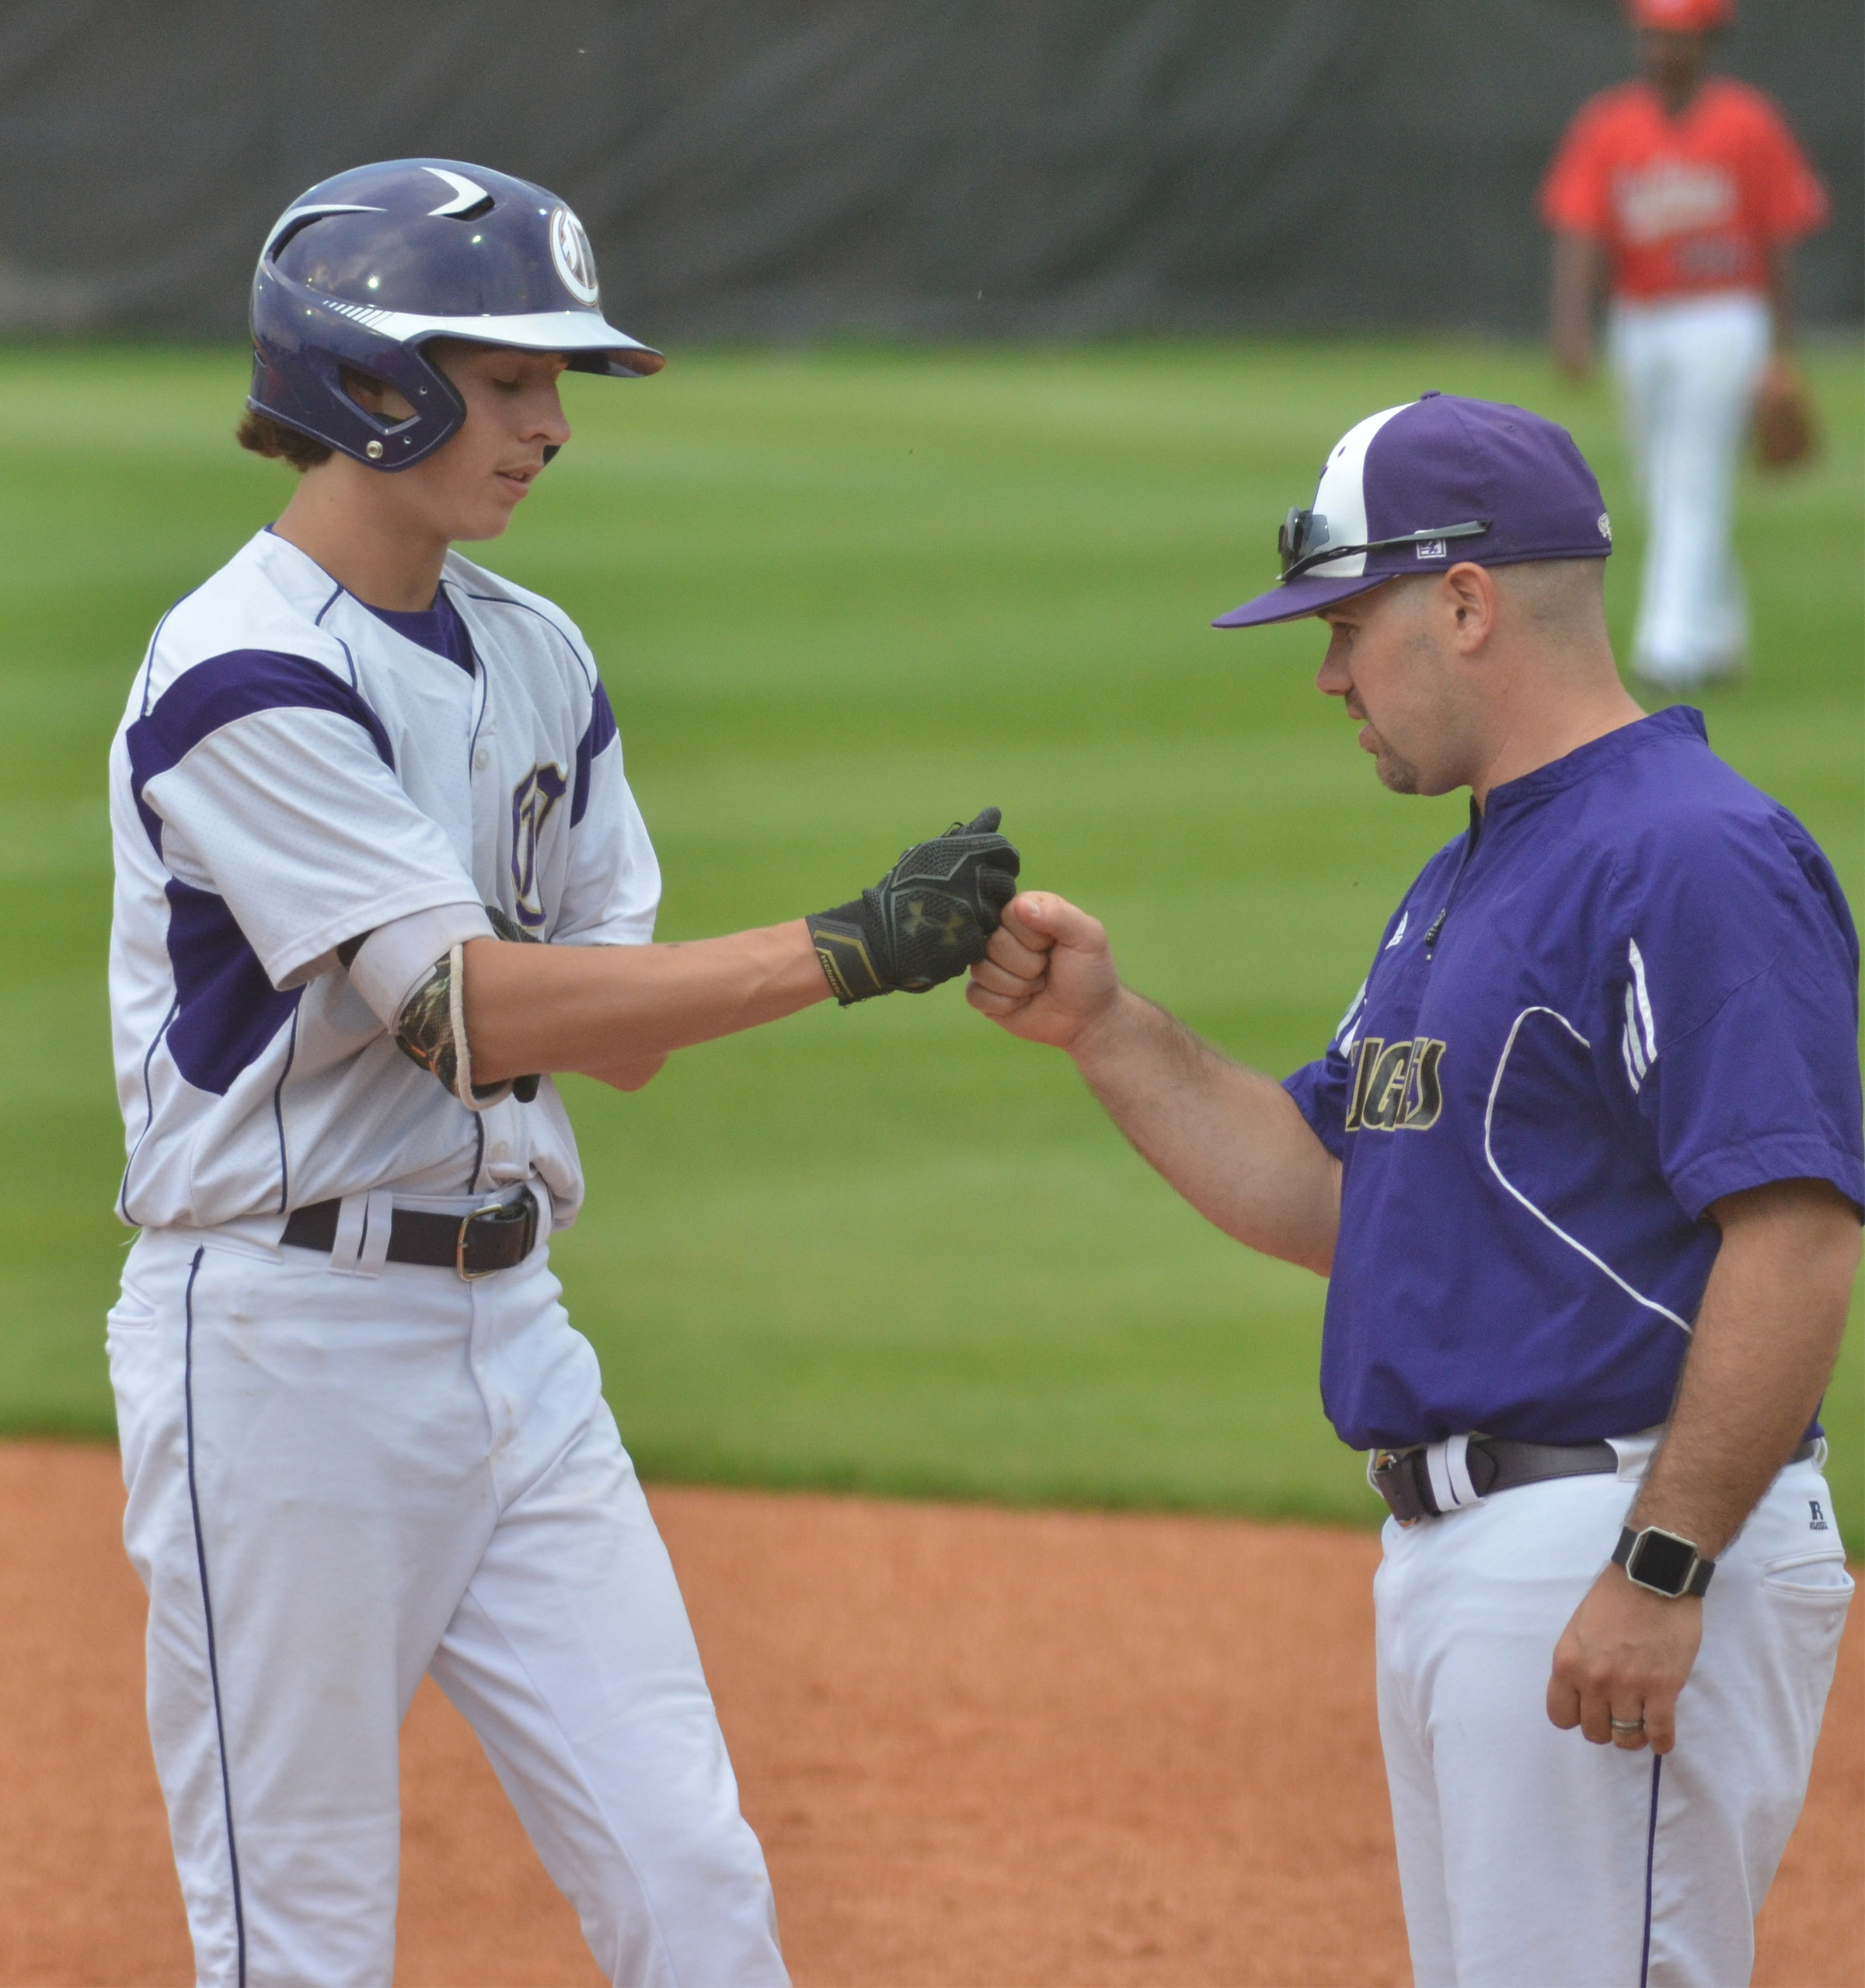 Campbellsville Middle School eighth-grader John Orberson bumps fists with assistant coach Blake Milby after getting a hit.